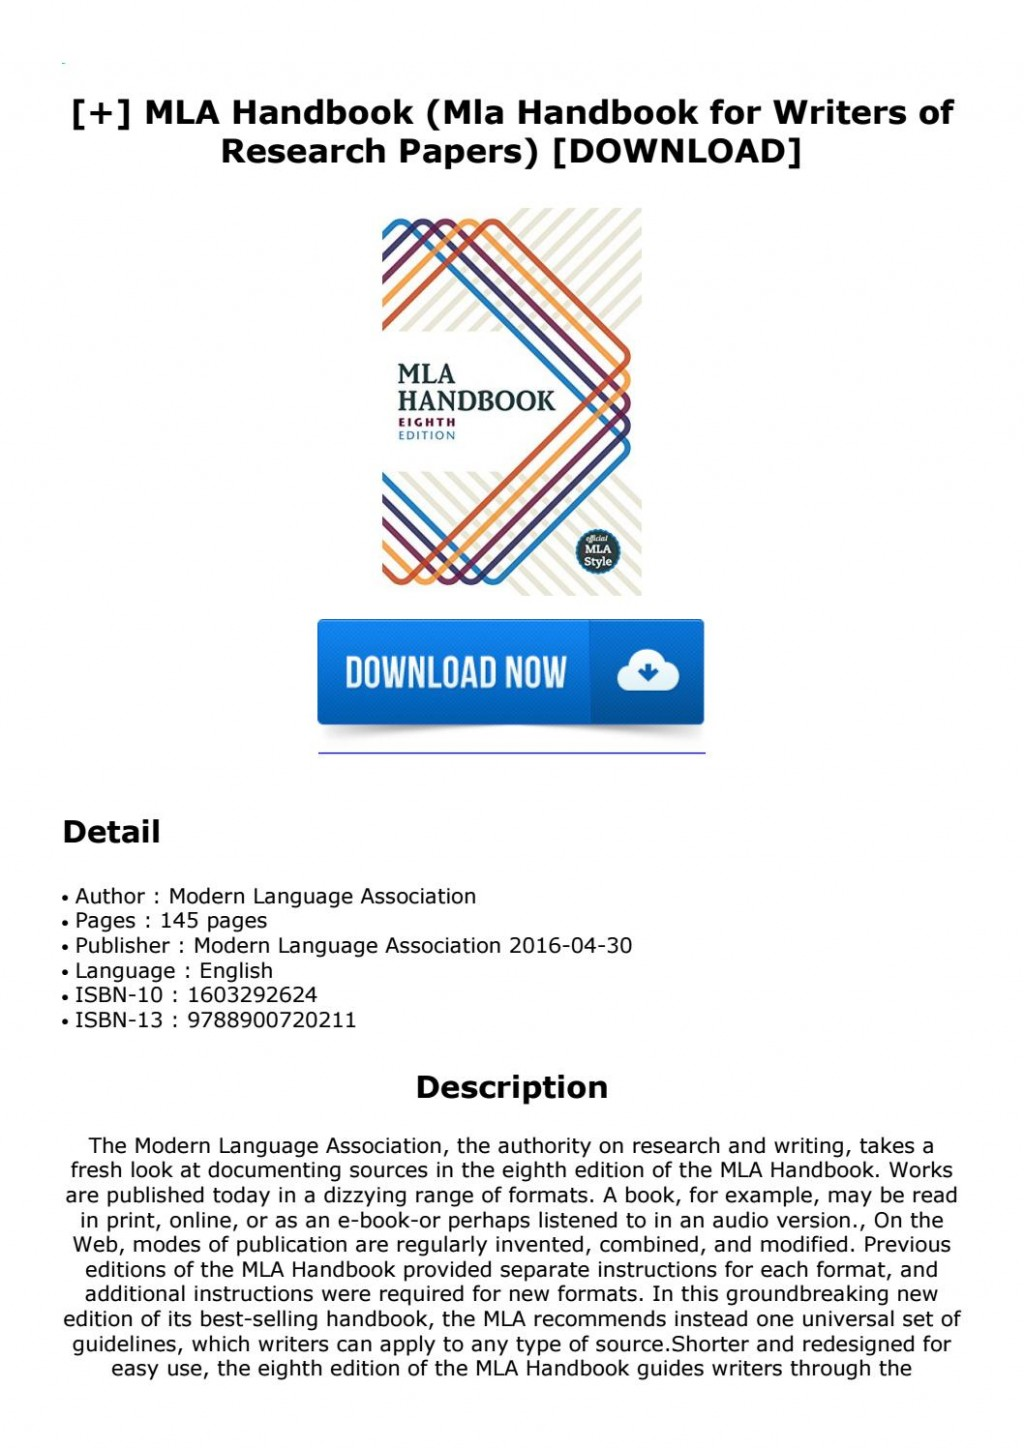 013 Page 1 Mla Handbook For Writers Of Researchs 8th Edition Unique Research Papers Pdf Free Download Large